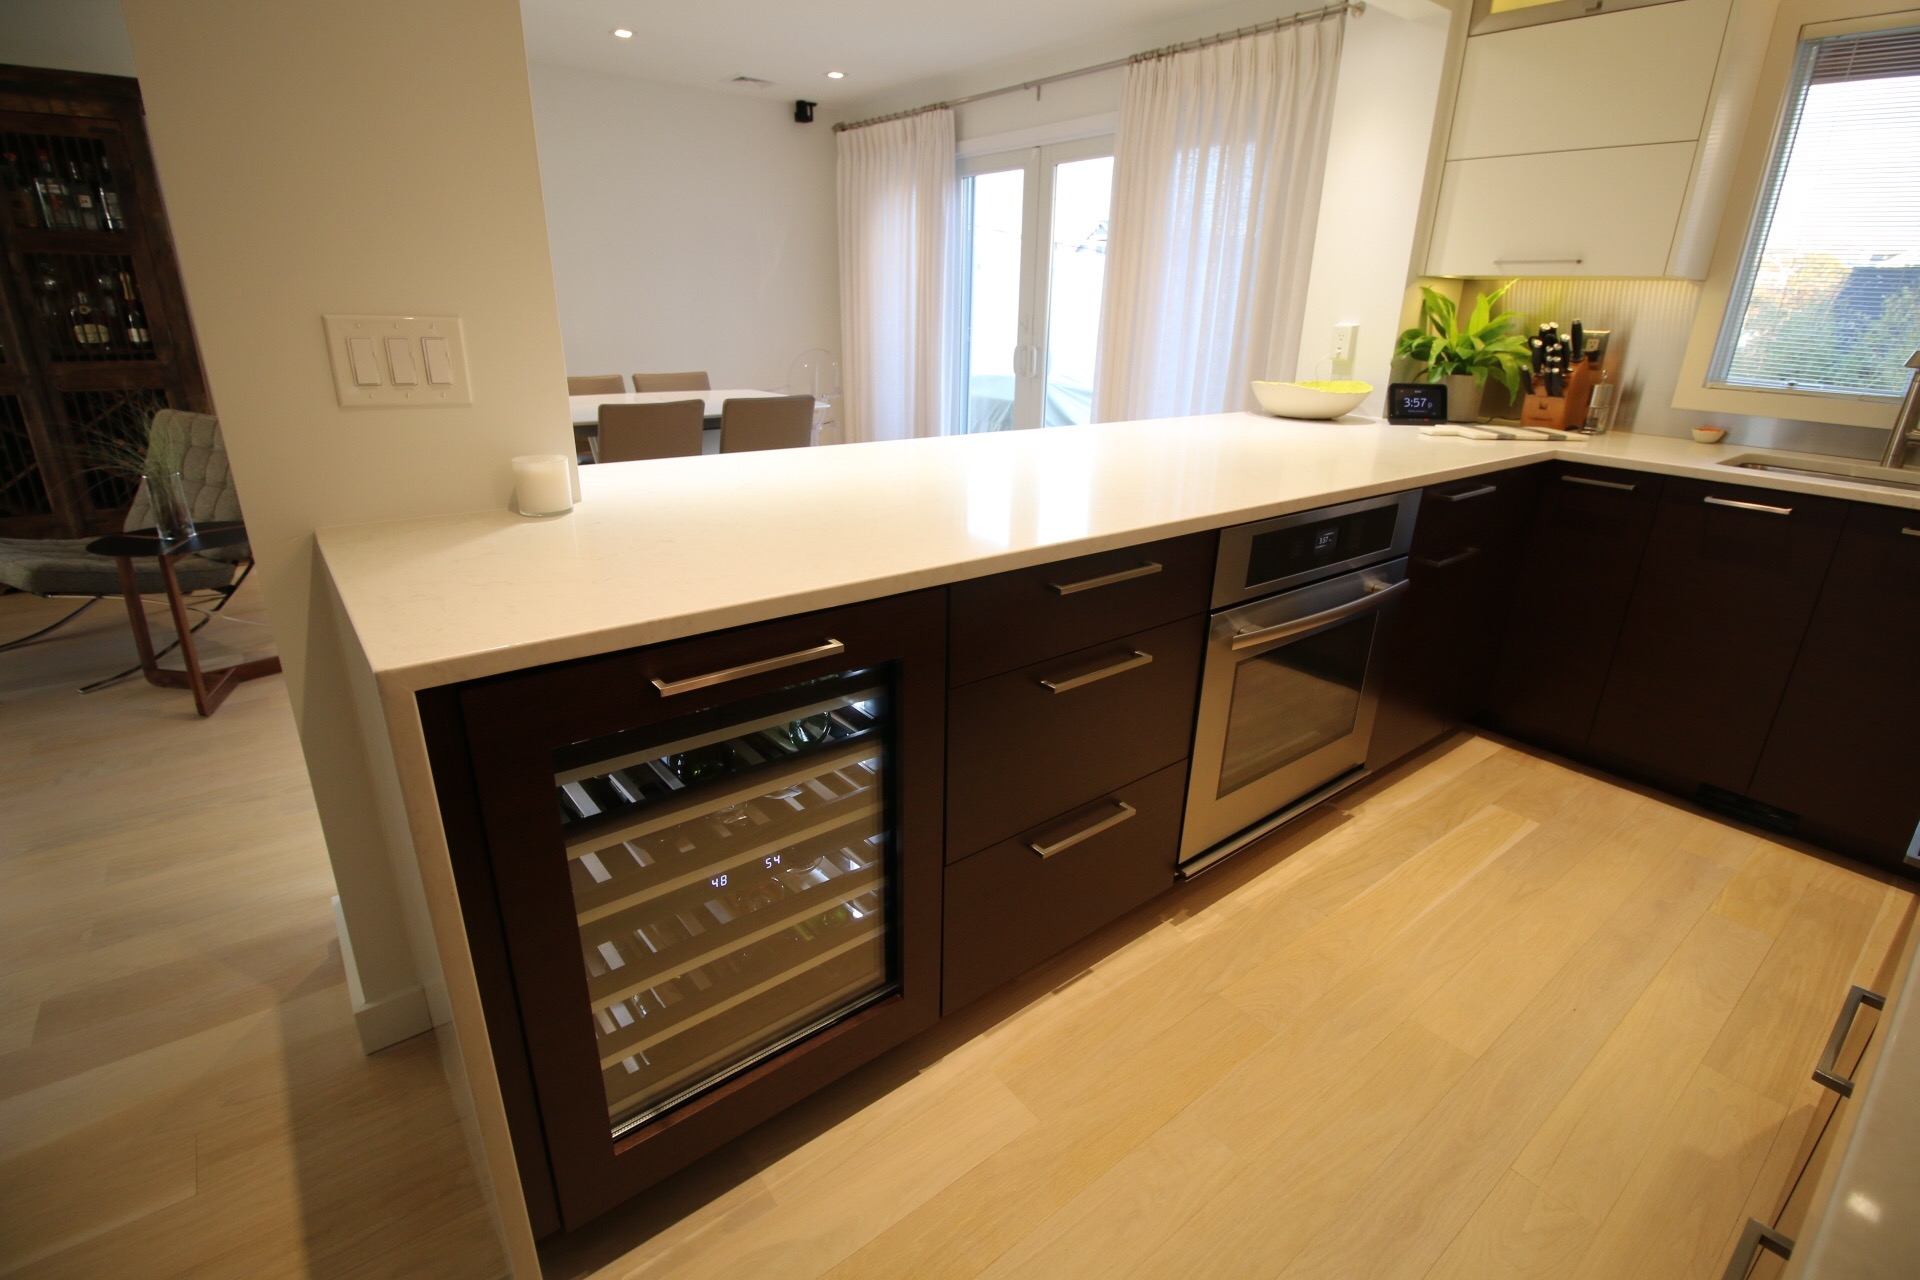 Ideal Kitchens - New Jersey Custom Kitchens and Cabinets on ideal playsets, ideal wood flooring, ideal vacuum, ideal cast iron stove, ideal home care, ideal chemical, ideal garden, ideal design, ideal tile, ideal wood stoves, ideal toys, ideal beauty, ideal funeral, ideal hand tools, ideal backyard landscaping, ideal kitchen, ideal boiler, ideal mattress, ideal office,